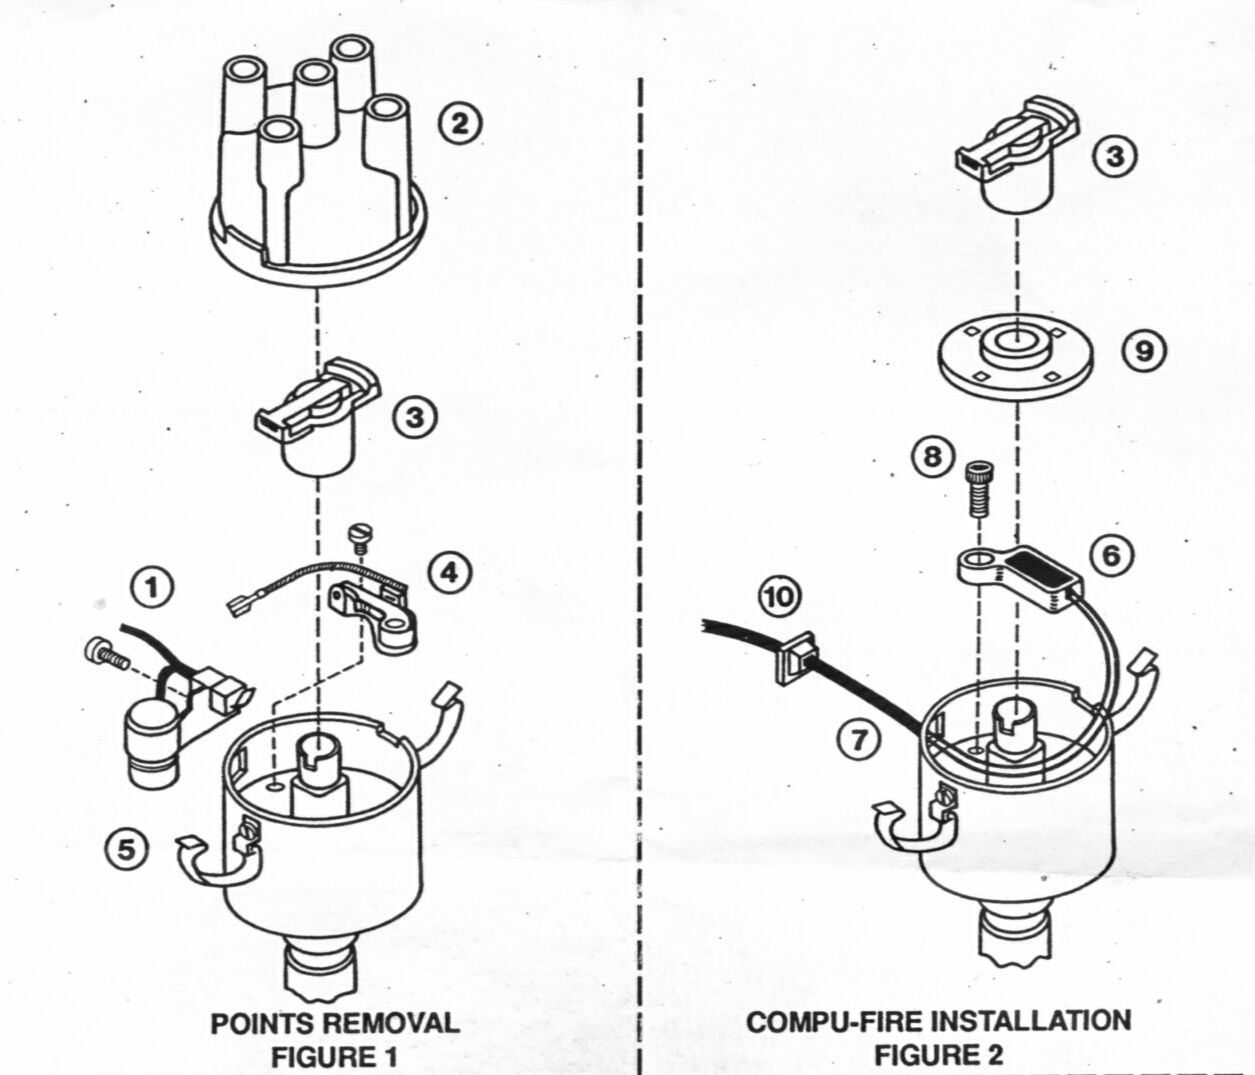 Vw Bug Electronic Ignition Wiring - Go Wiring Diagram  Vw Type Coil Wiring Diagram on vw bus wiring diagram, type 1 vw engine diagram, vw bug wiring diagram, vw gti wiring diagram, vw r32 wiring diagram, 72 vw wiring diagram, vw thing wiring diagram, vw 1600 engine diagram, jaguar e type wiring diagram, vw engine wiring diagram, vw type 2 wiring diagram, air cooled vw wiring diagram, 1965 vw wiring diagram, vw type 4 wiring diagram, vw jetta wiring diagram, vw alternator conversion wiring diagram, vw ignition wiring diagram, 1973 vw wiring diagram, 1974 vw engine diagram, 68 vw wiring diagram,